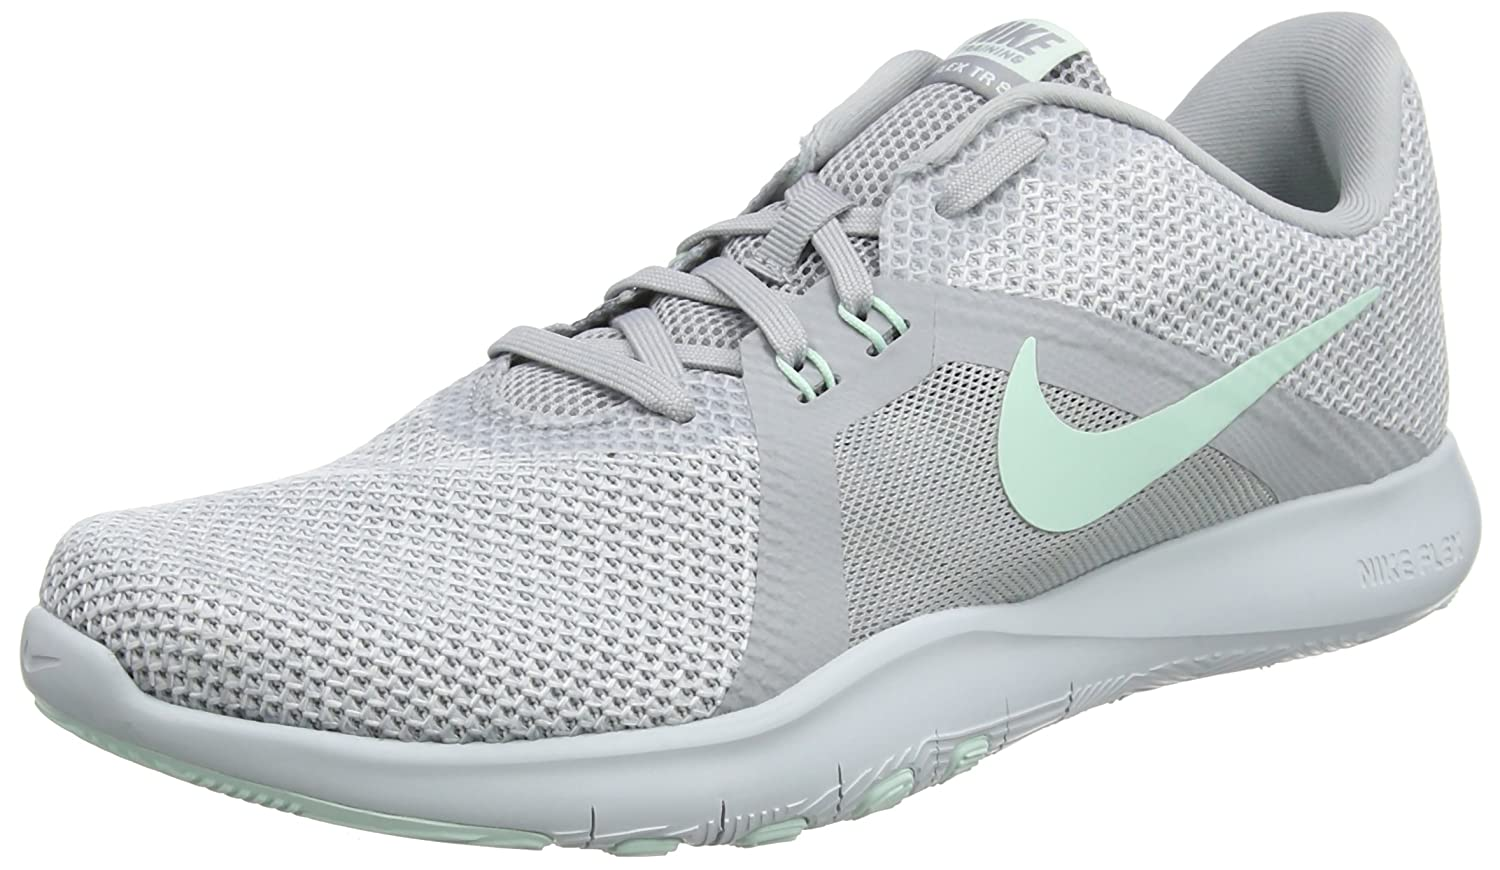 NIKE Women's Flex 8 Cross Trainer B0761XYWXX 12 M US|Wolf Grey/Igloo - White - Pure Platinum